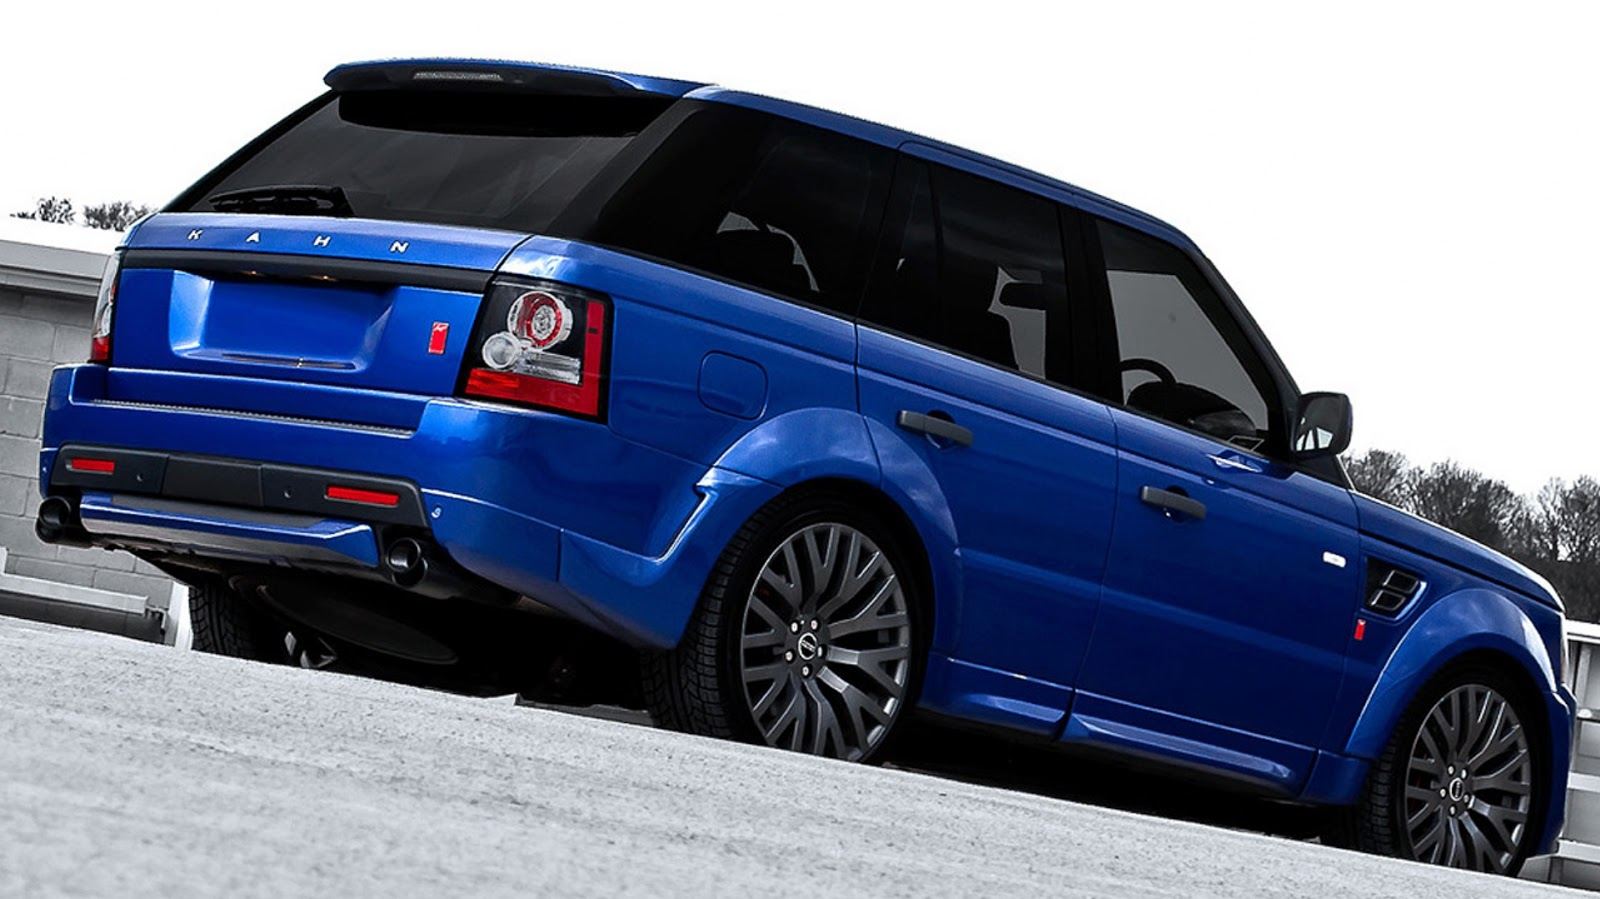 all cars nz 2012 land rover range rover bali blue rs300 cosworth by project kahn. Black Bedroom Furniture Sets. Home Design Ideas